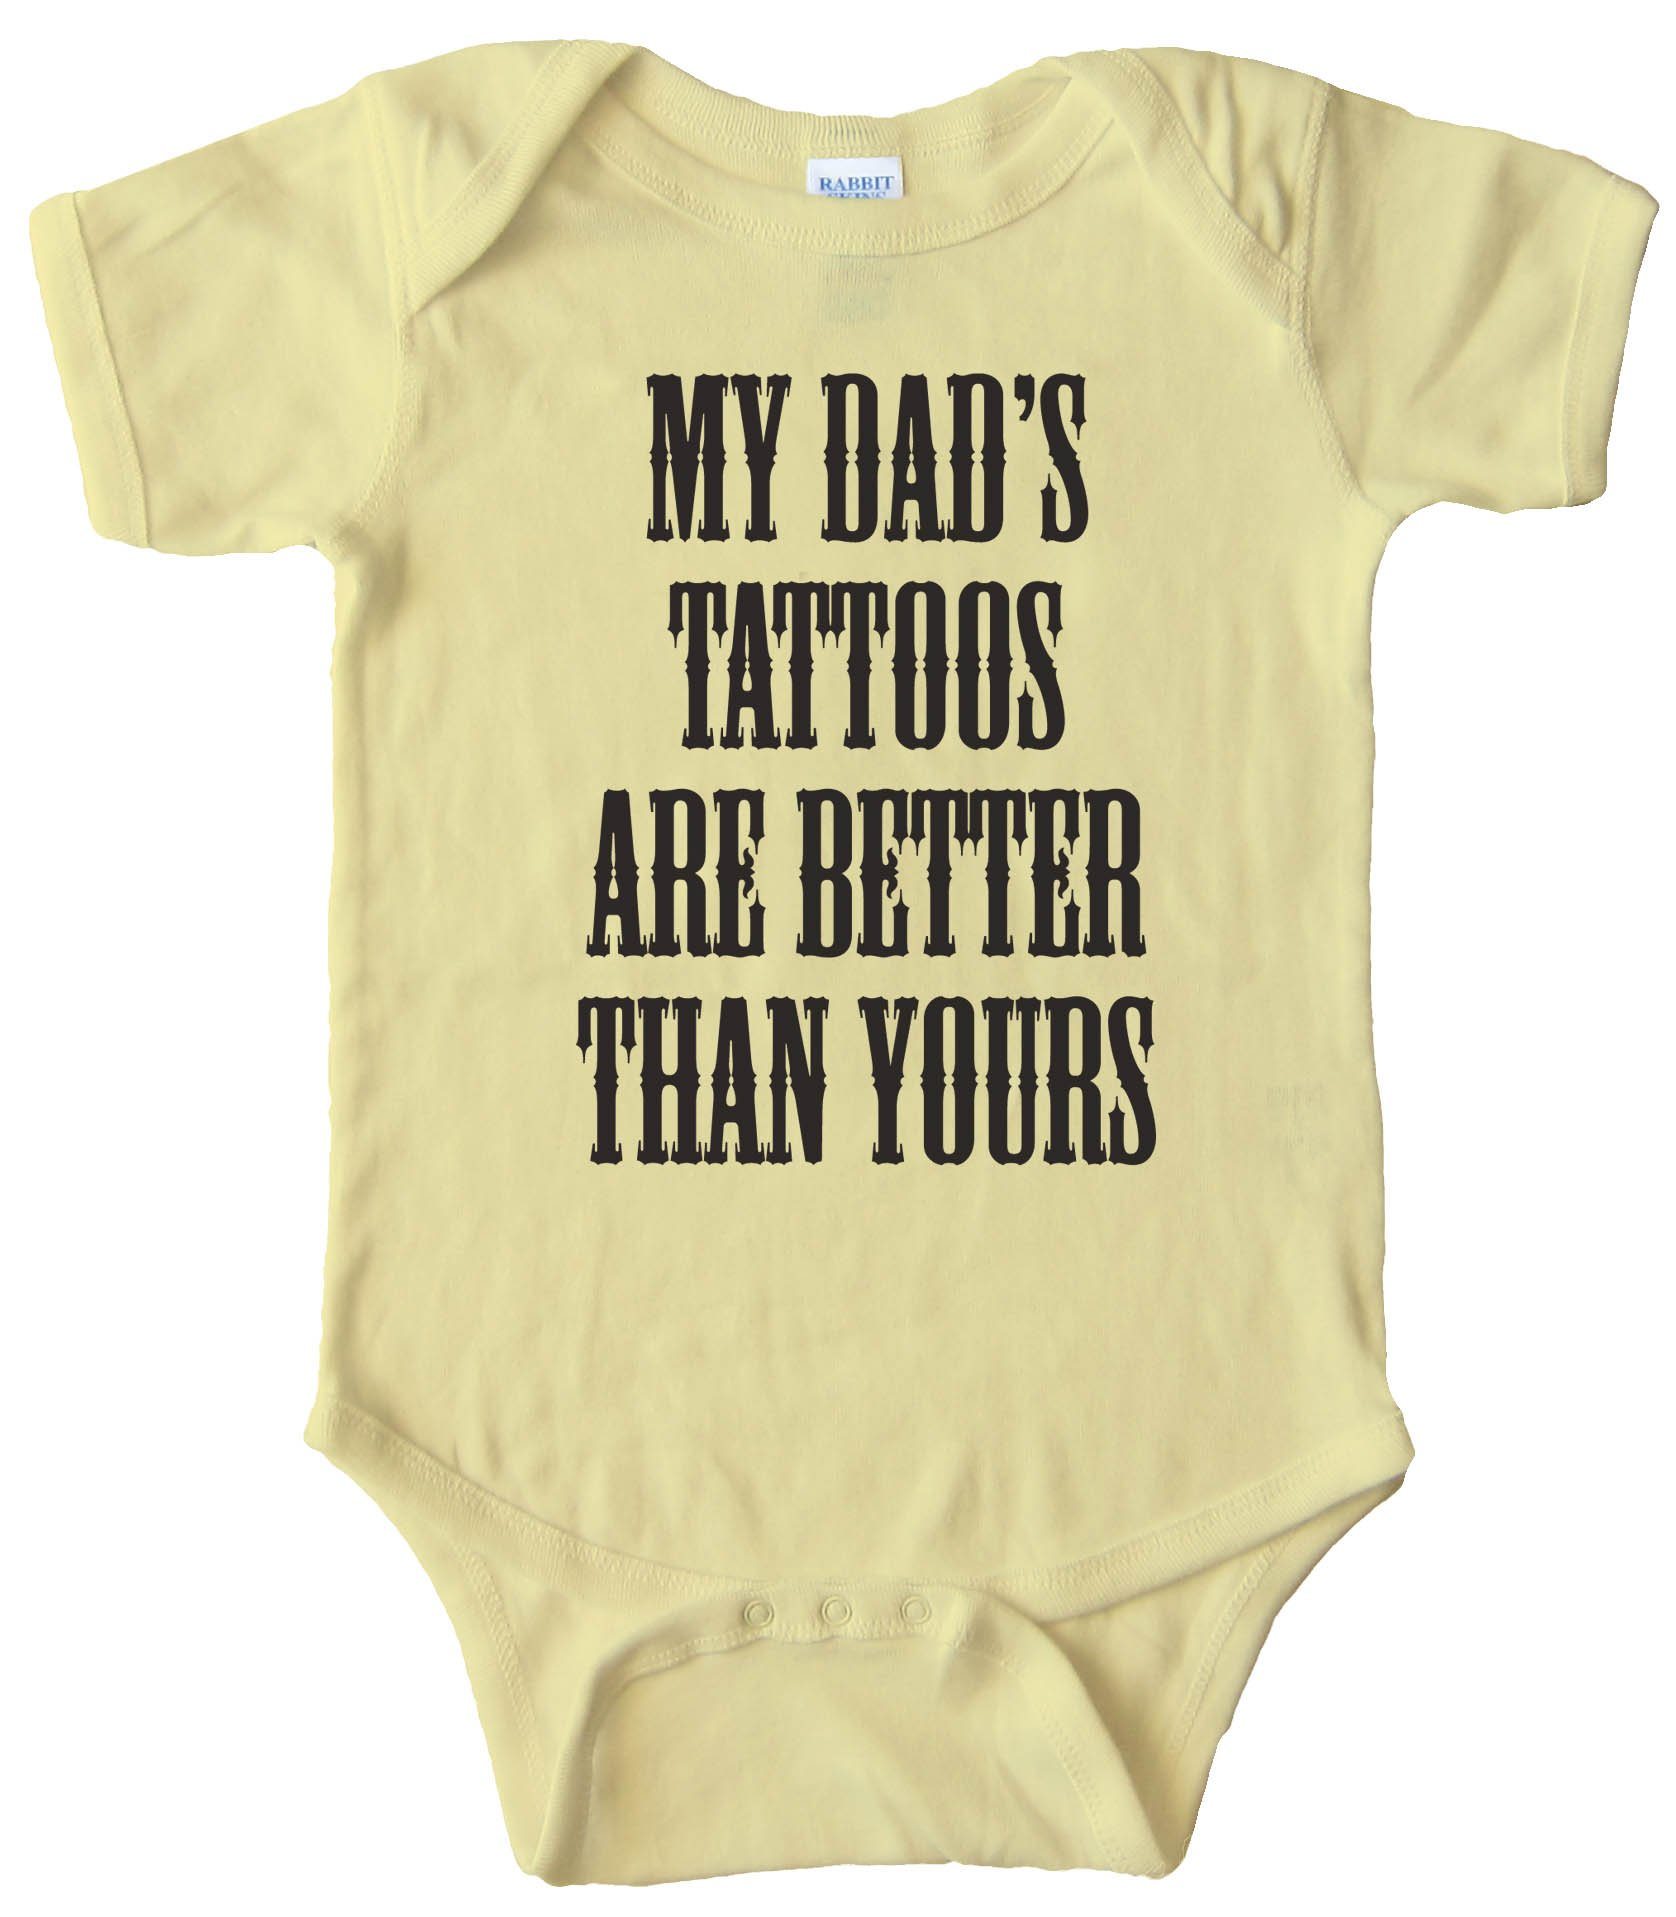 My Dads Tattoos Are Better Than Yours - Baby Bodysuit